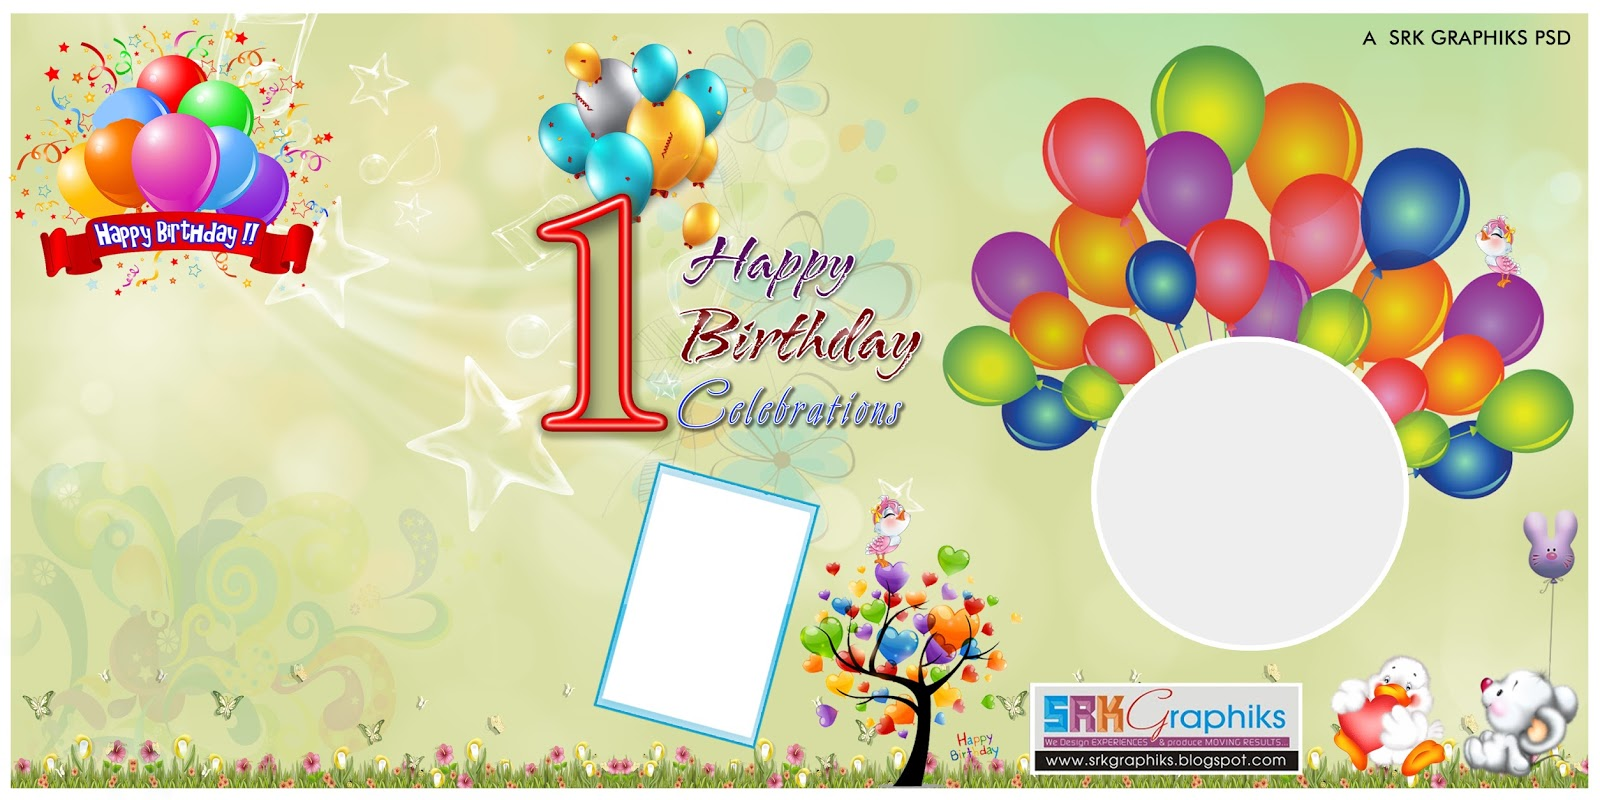 Birthday banner design photoshop template for free - SRK GRAPHICS